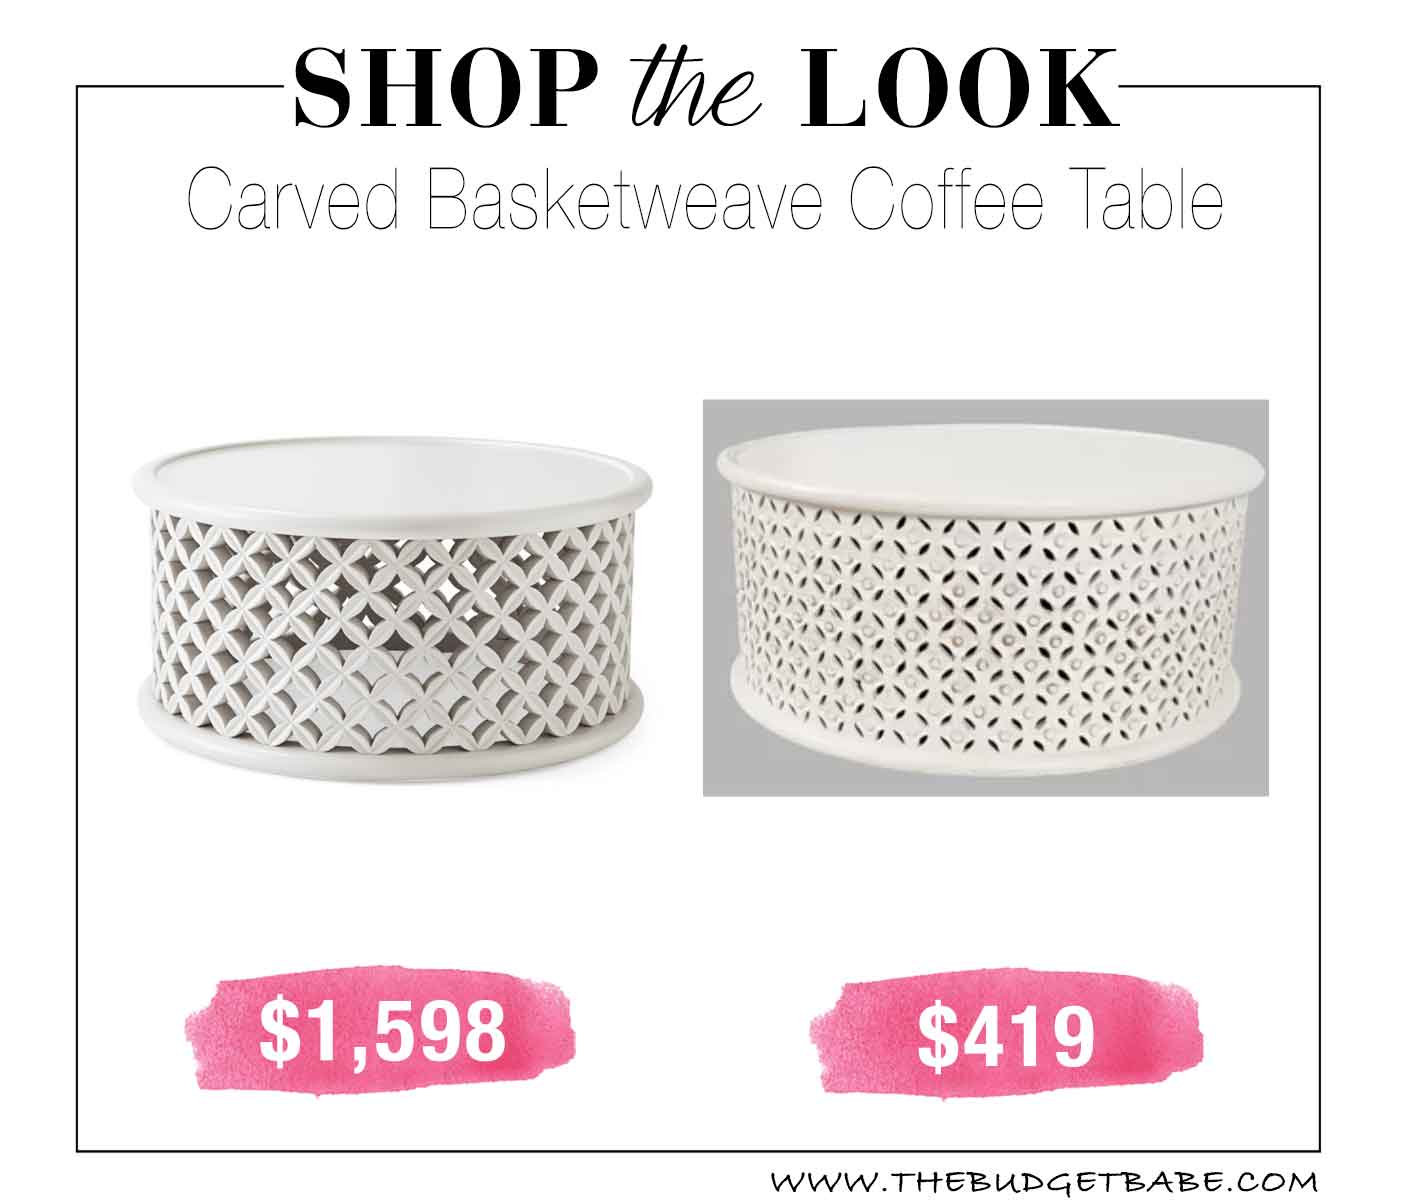 Shop the Look: Carved Basketweave Coffee Table